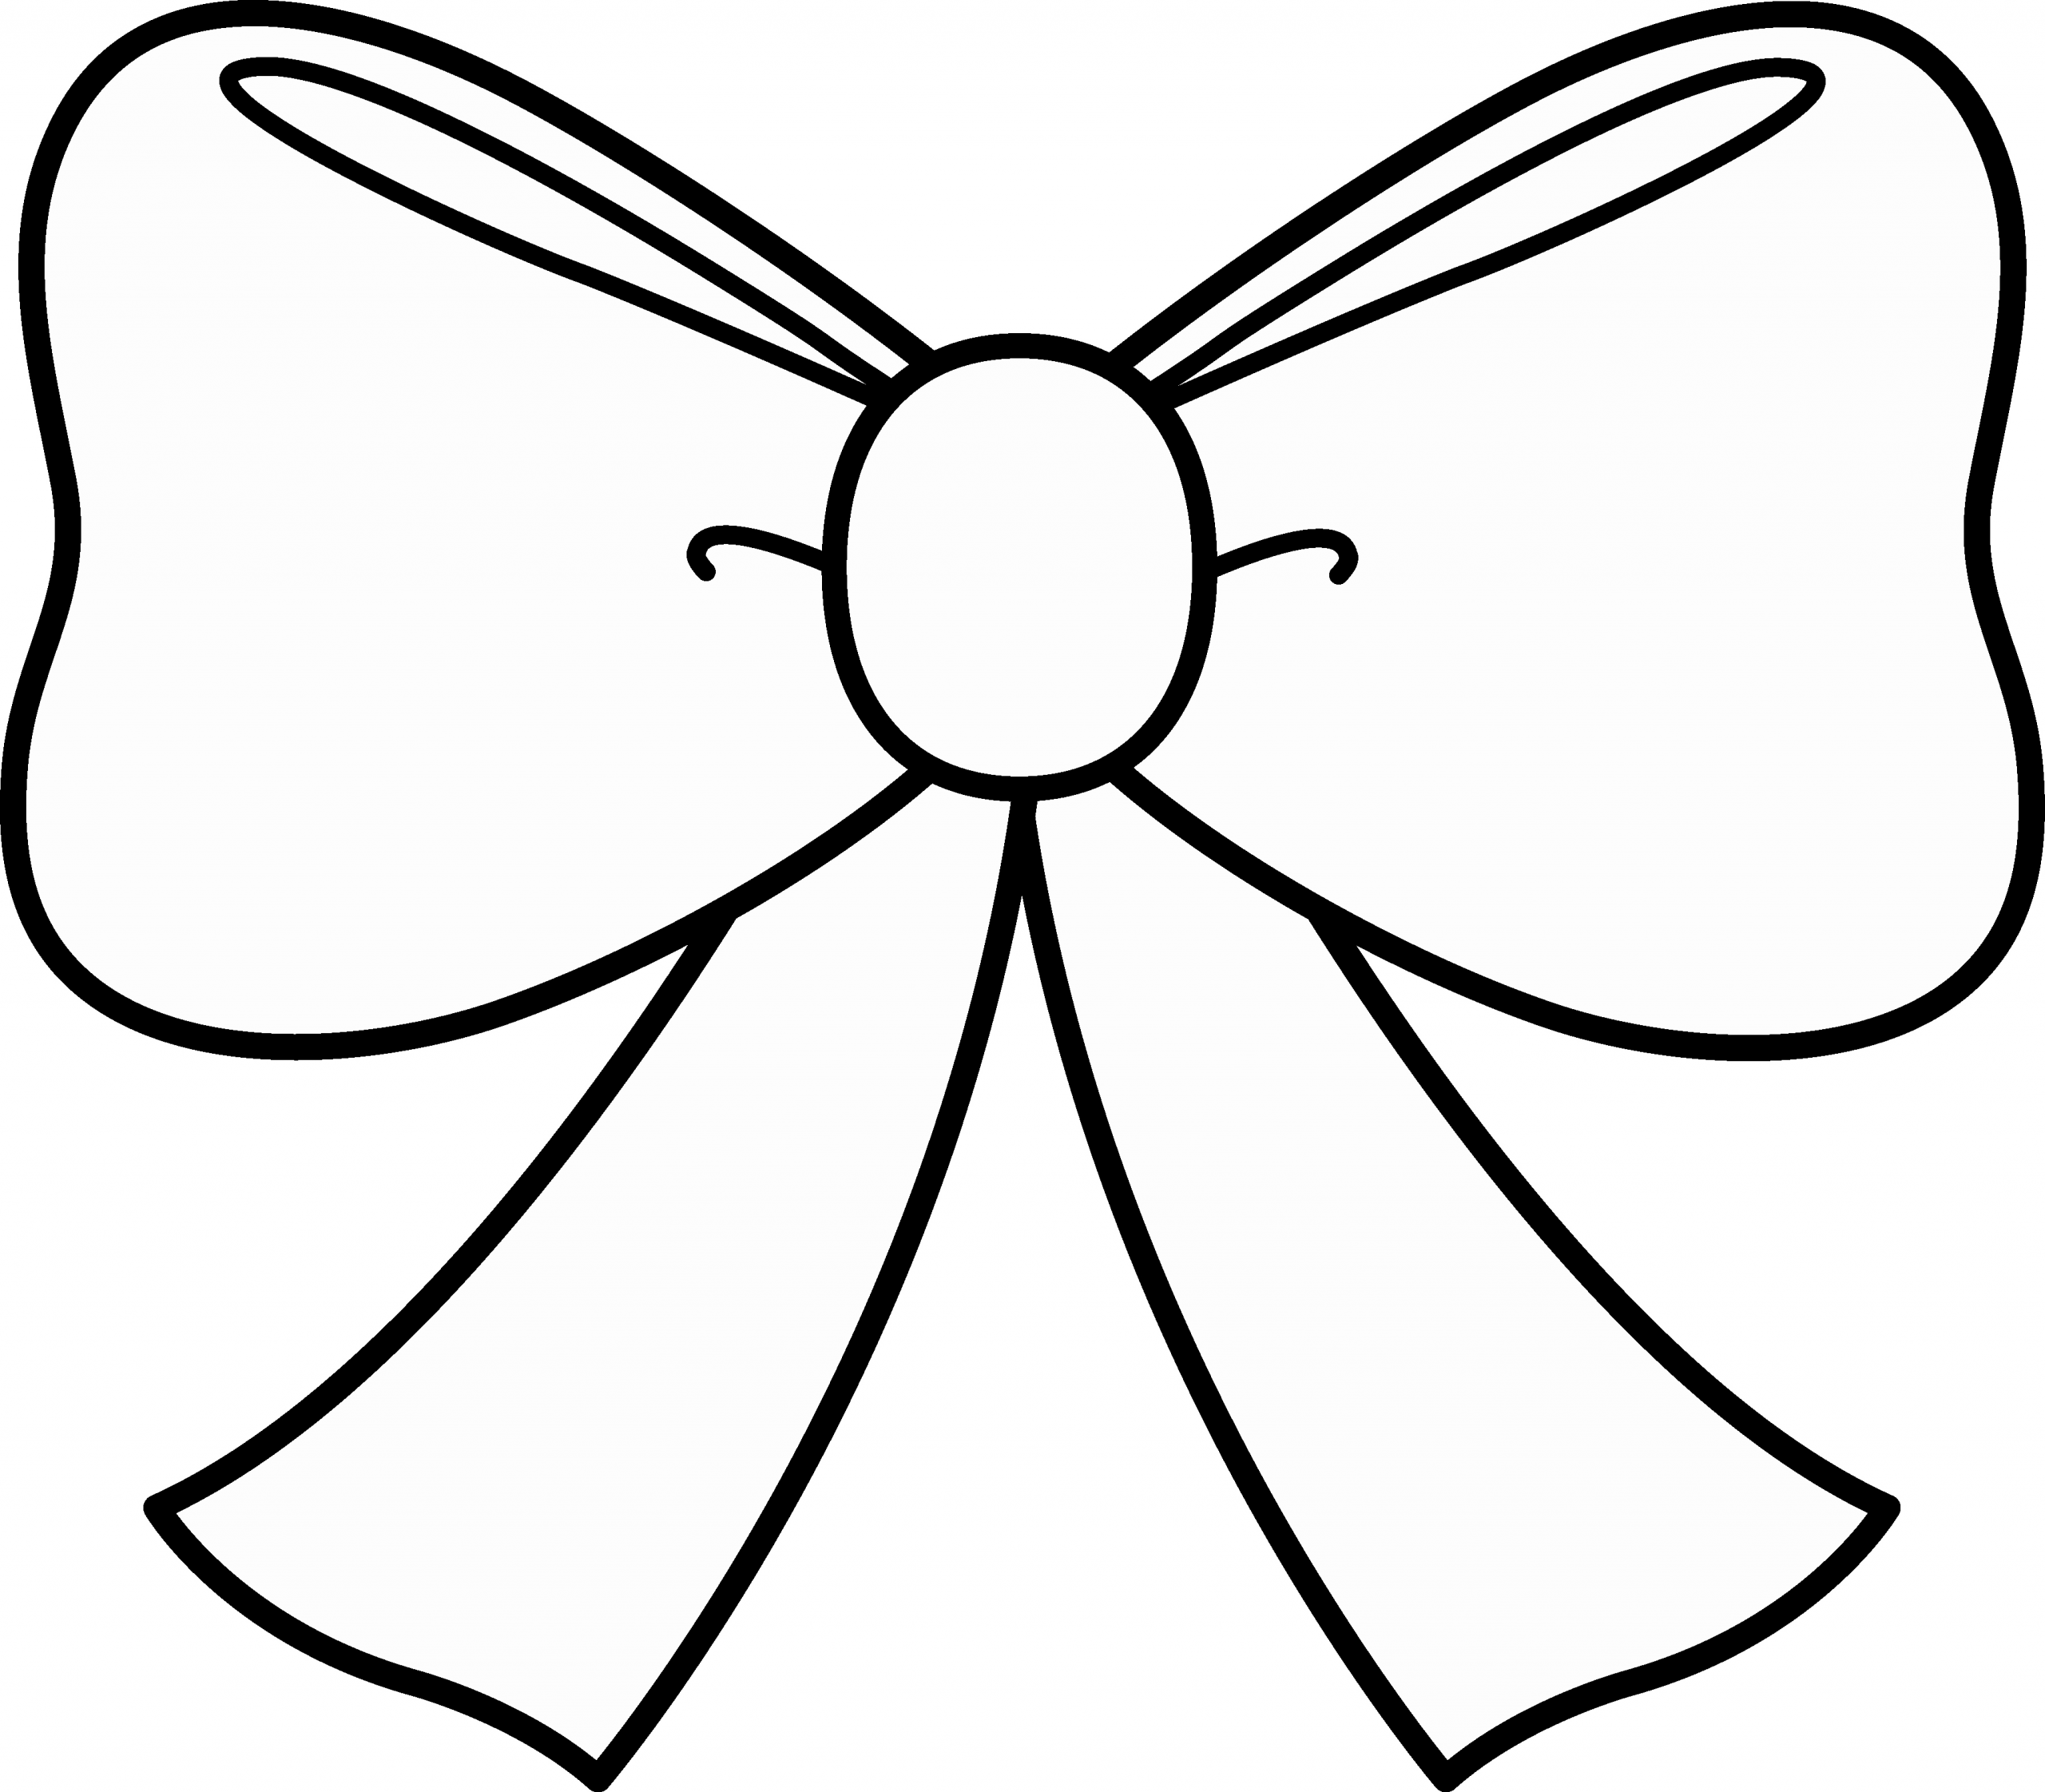 Bow Tie Coloring Page Unique Cute Bow Coloring Page Christmas Coloring Book Bow Clipart Christmas Coloring Books Free Clip Art